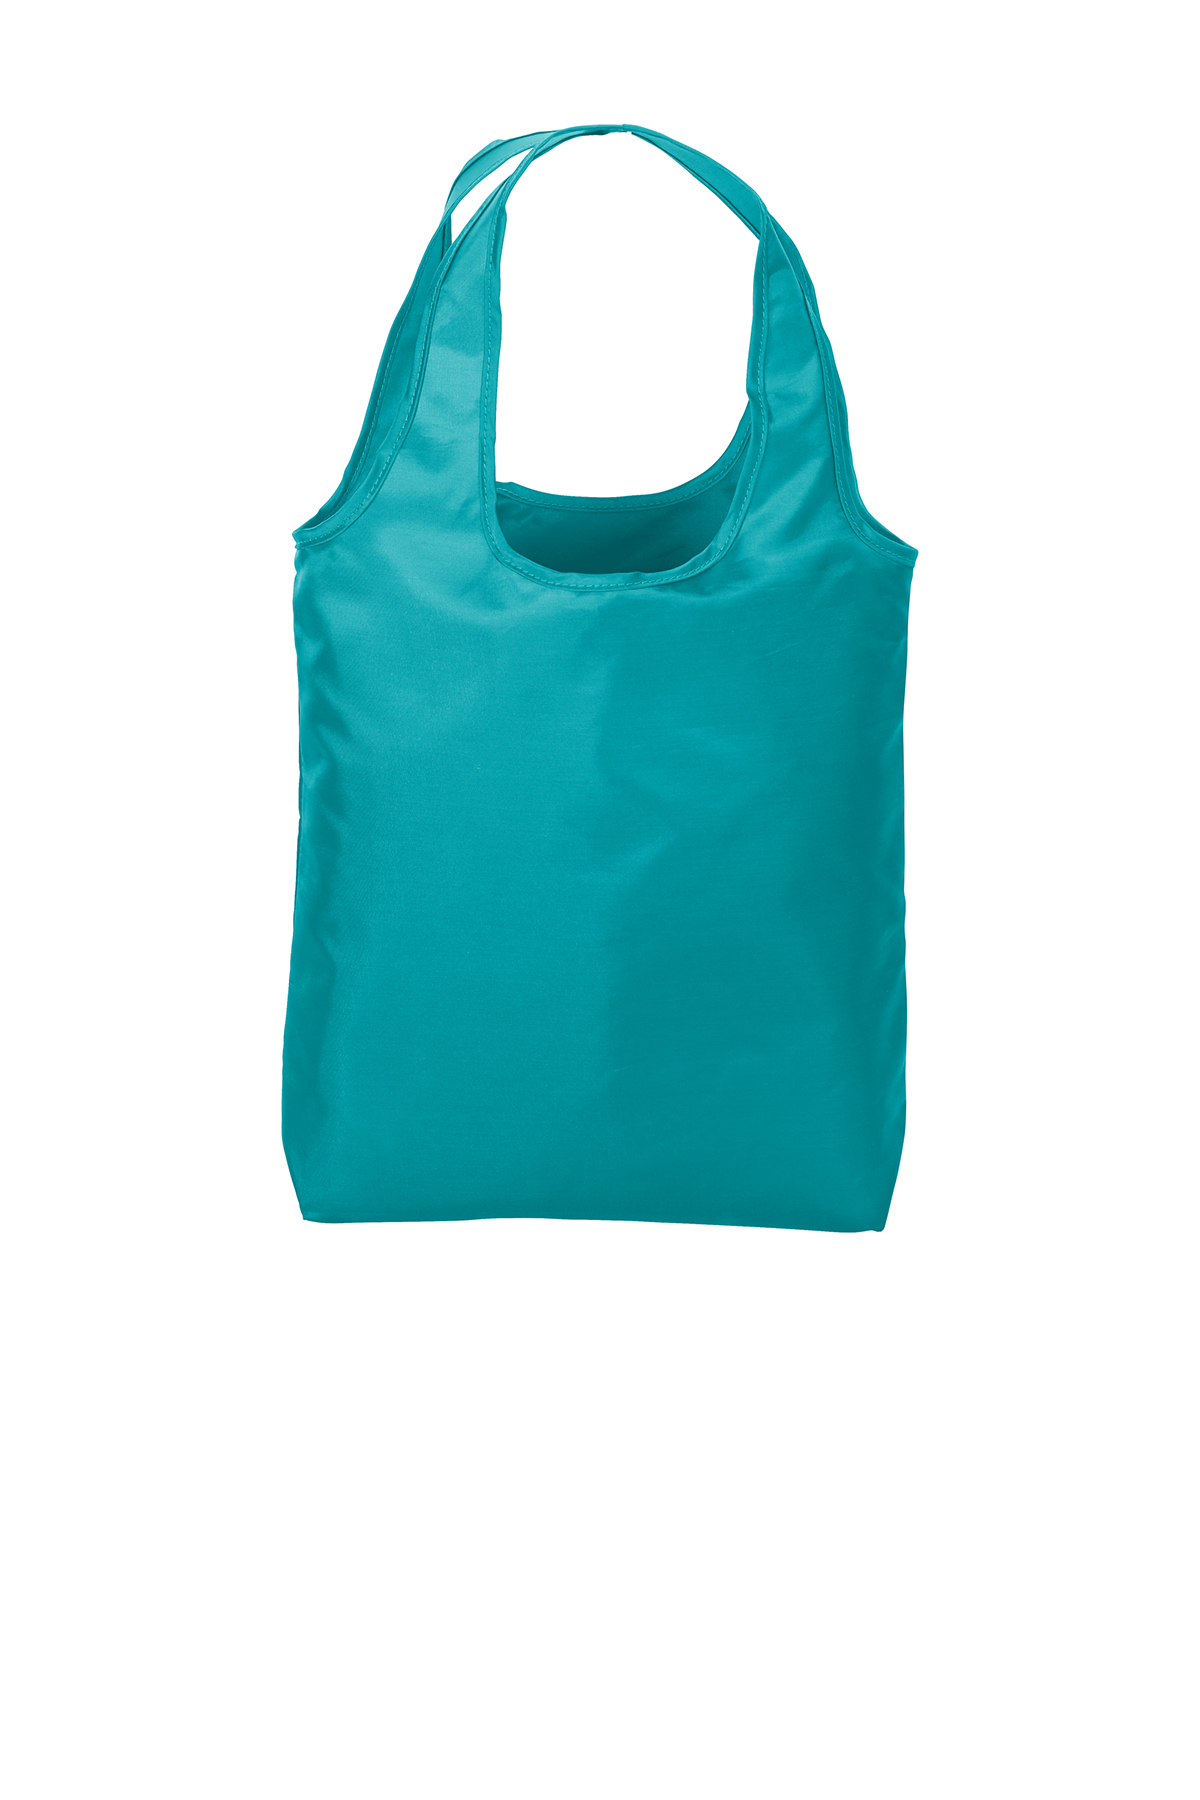 Port Authority BG416 - Ultra-Core Shopper Tote